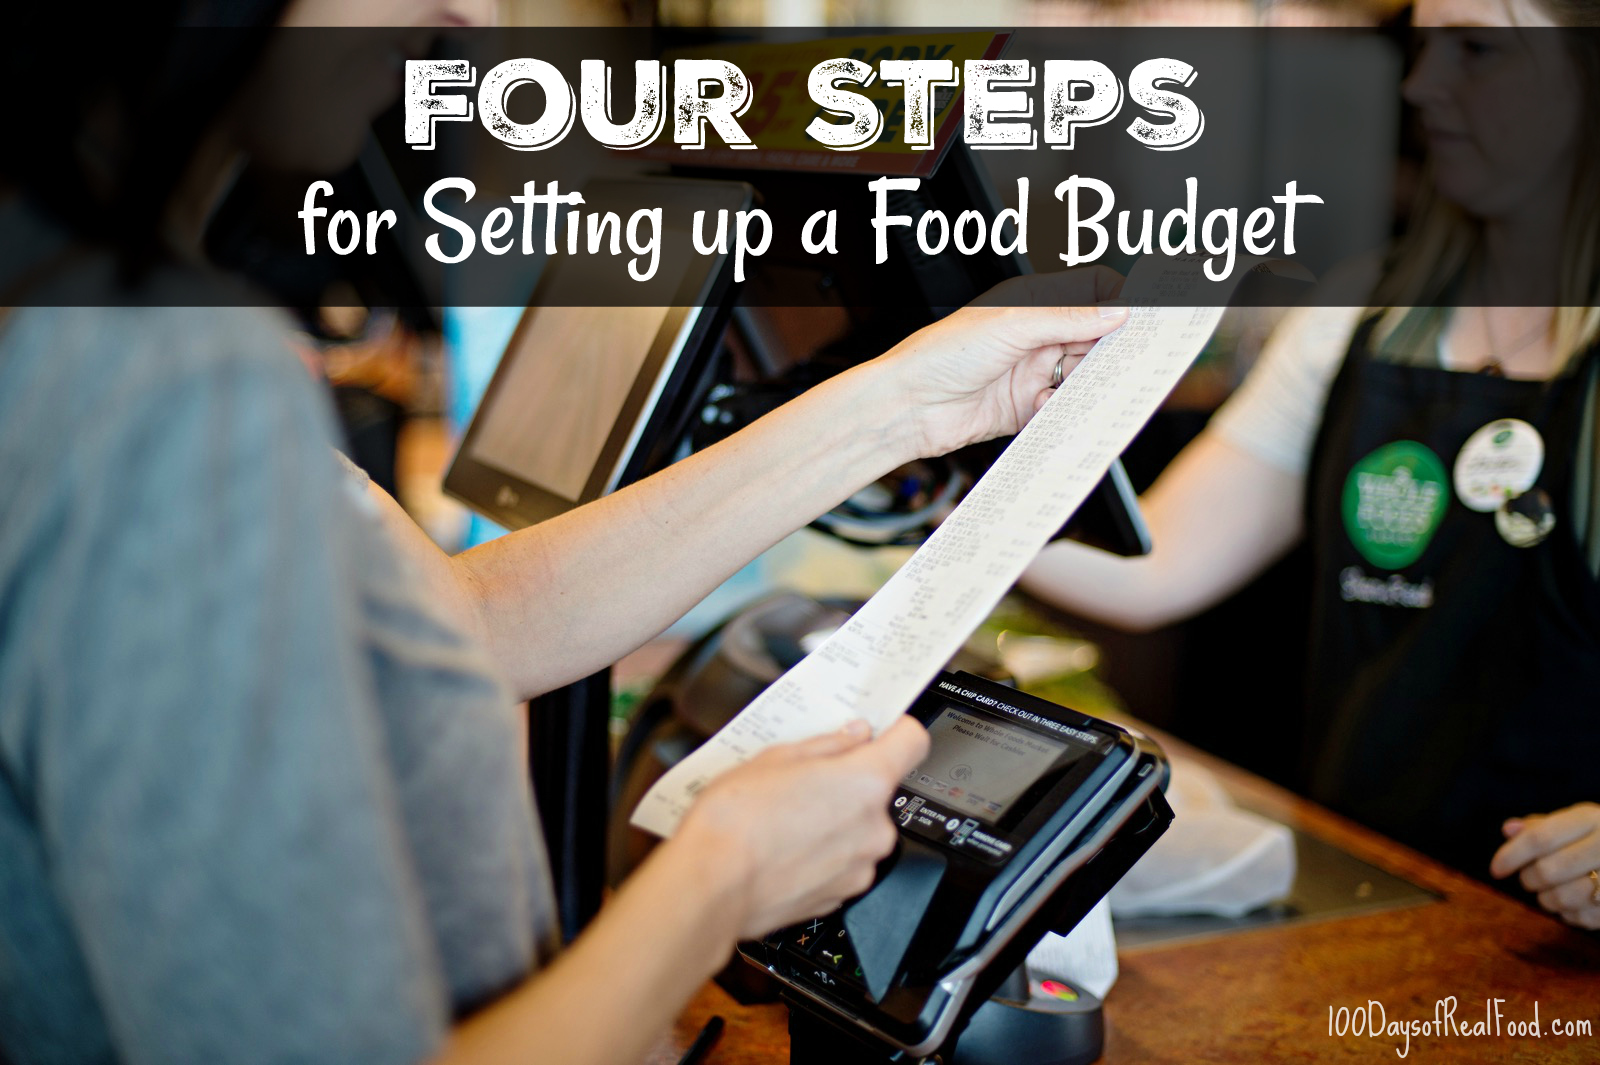 How to set up a food budget on 100 Days of Real Food